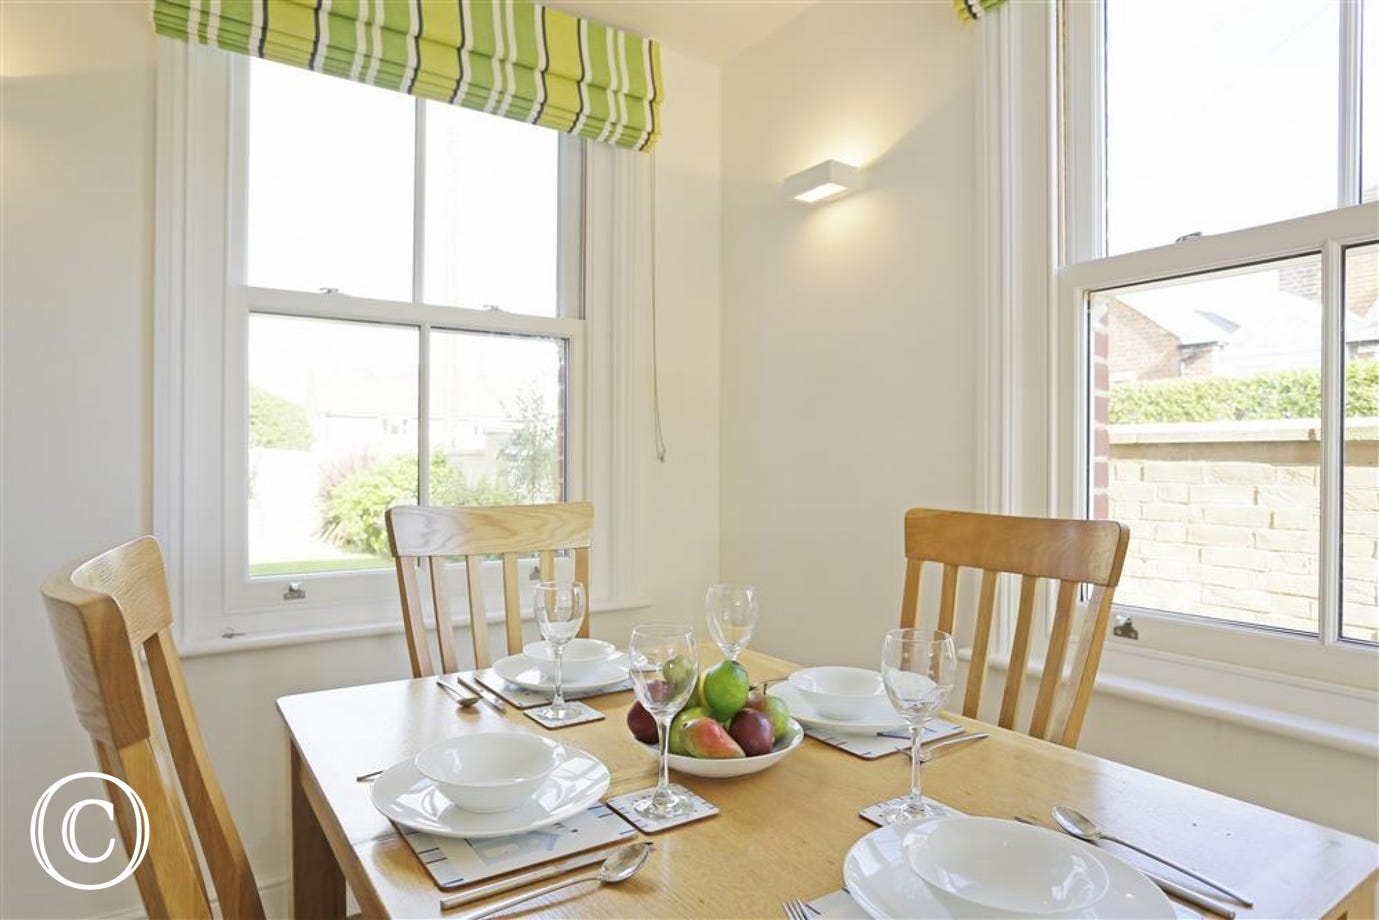 A lovely, bright space for all to eat together sociably.